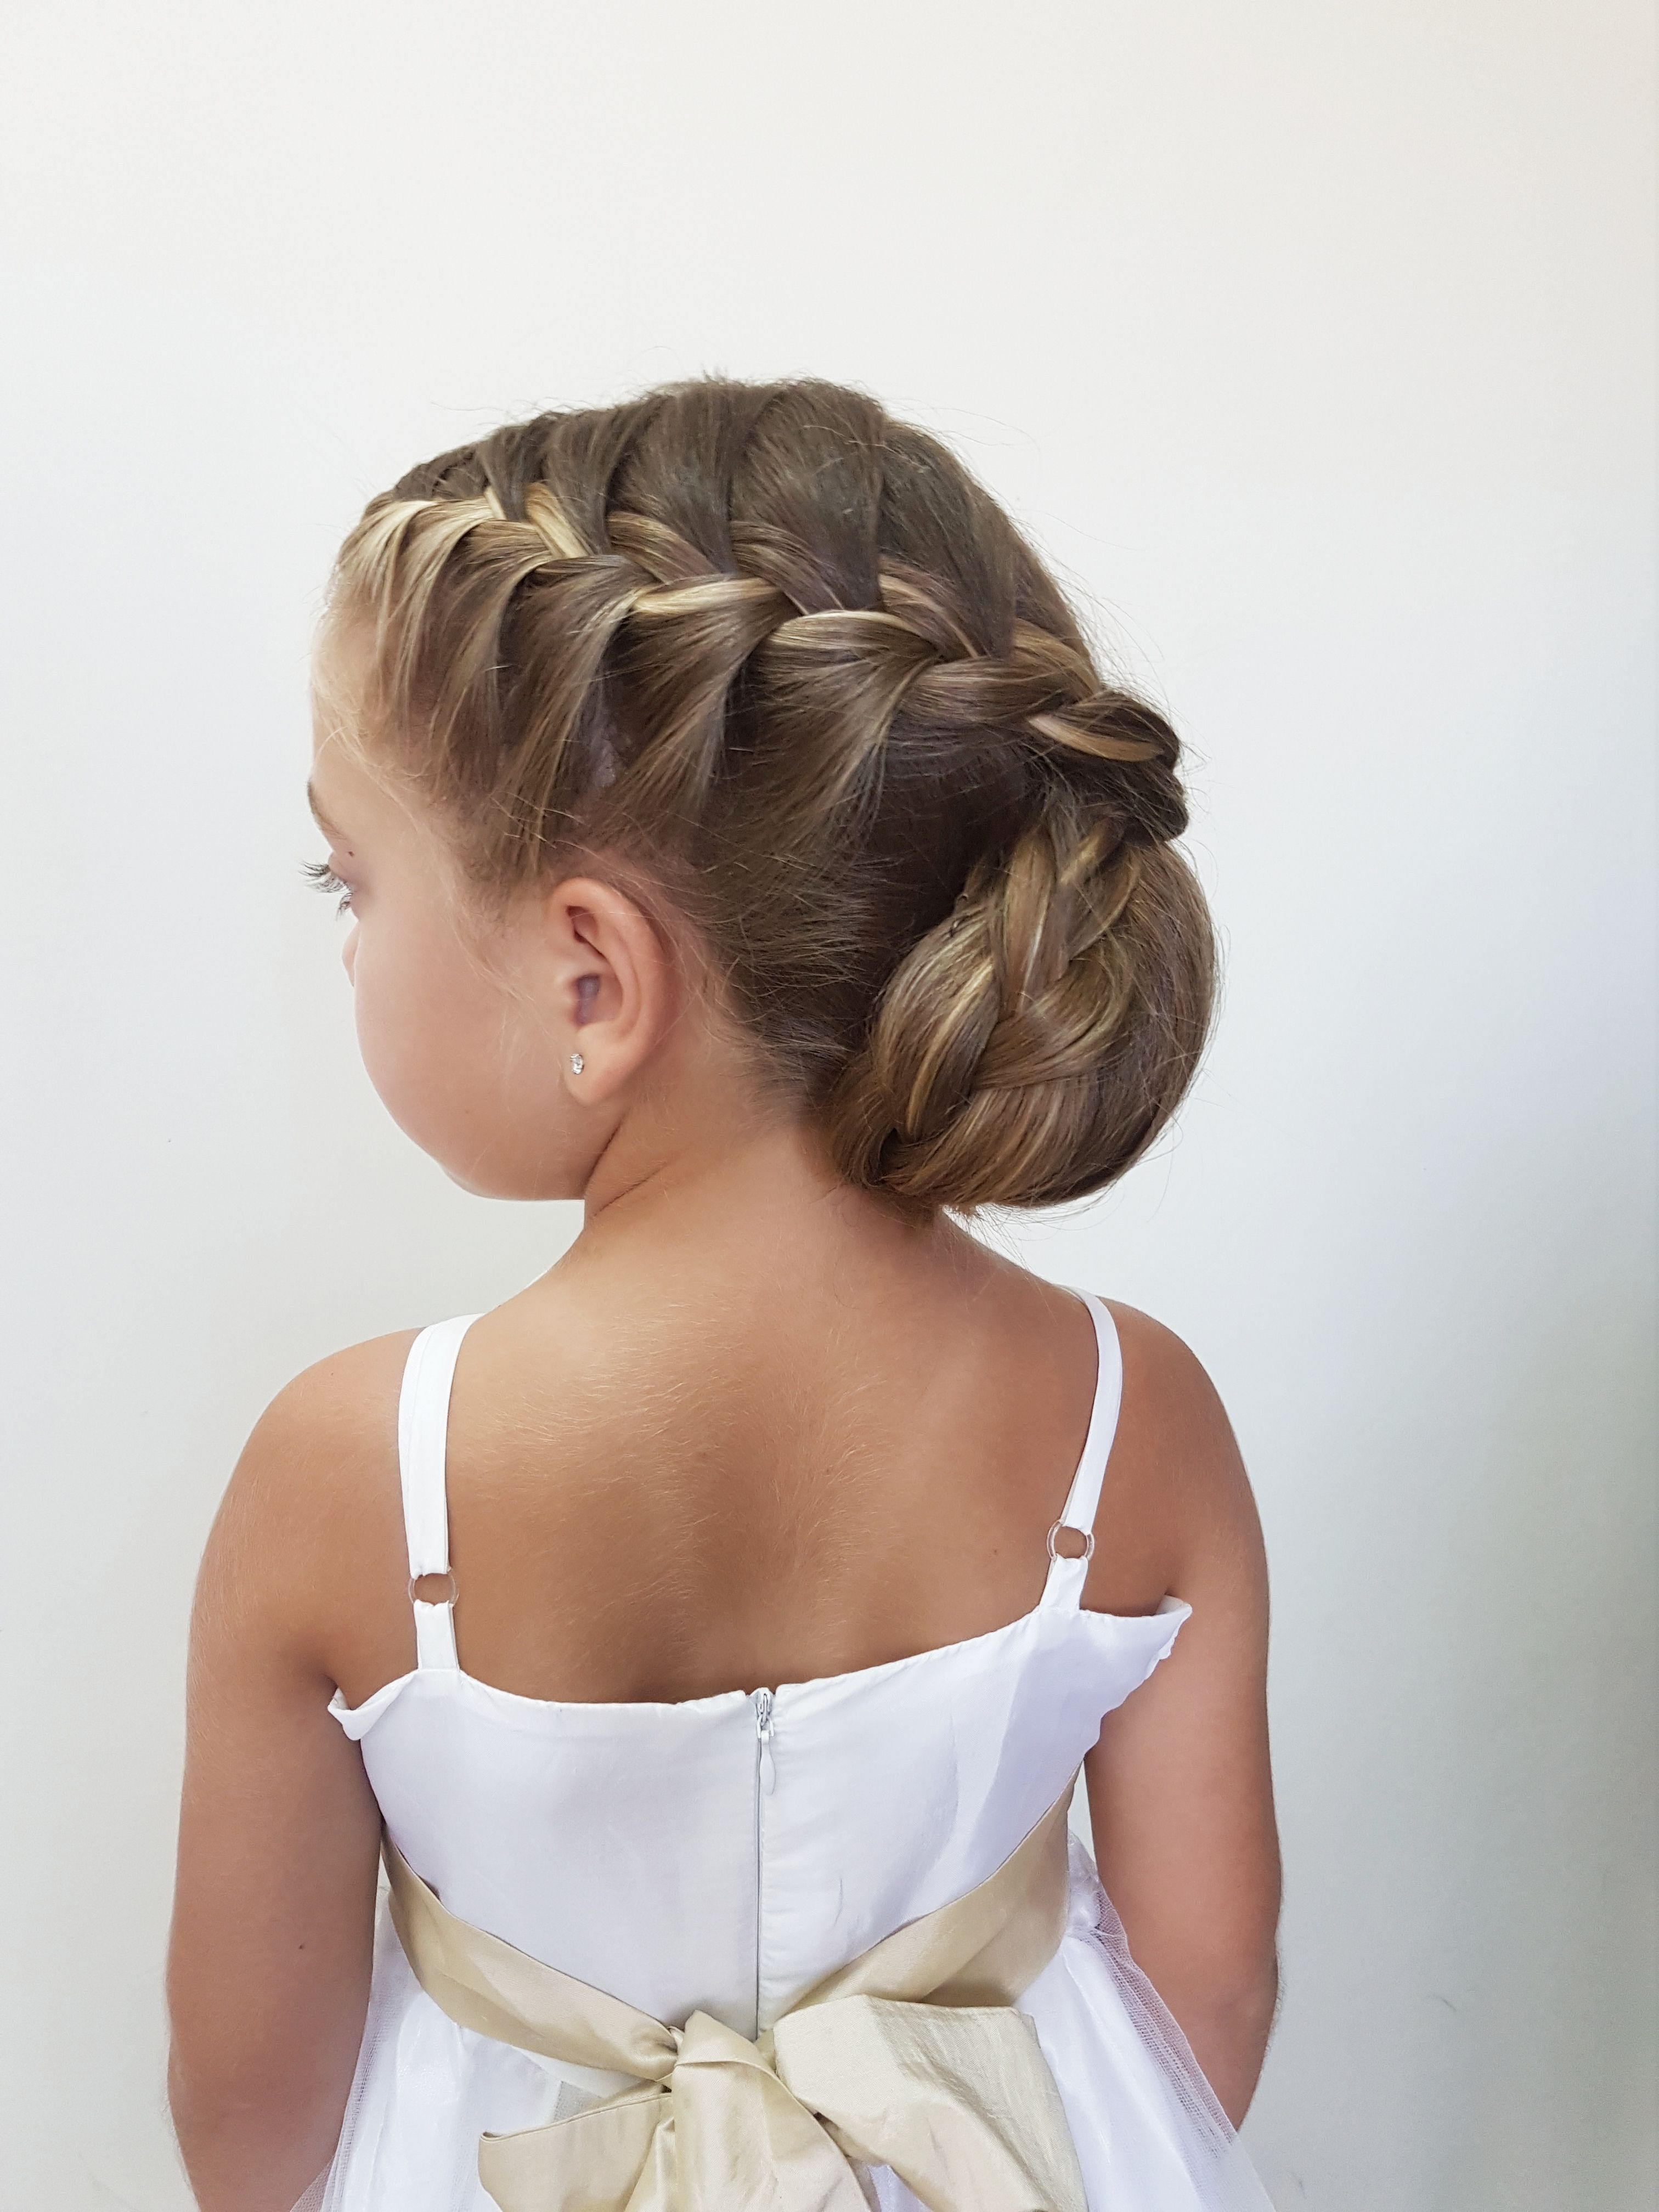 Wedding Hairstyles For Young Bridesmaids Boho Pinemily Rector On Aubreys Hairstyles In 2019 In 2020 Junior Bridesmaid Hair Kids Hairstyles For Wedding Kids Hairstyles